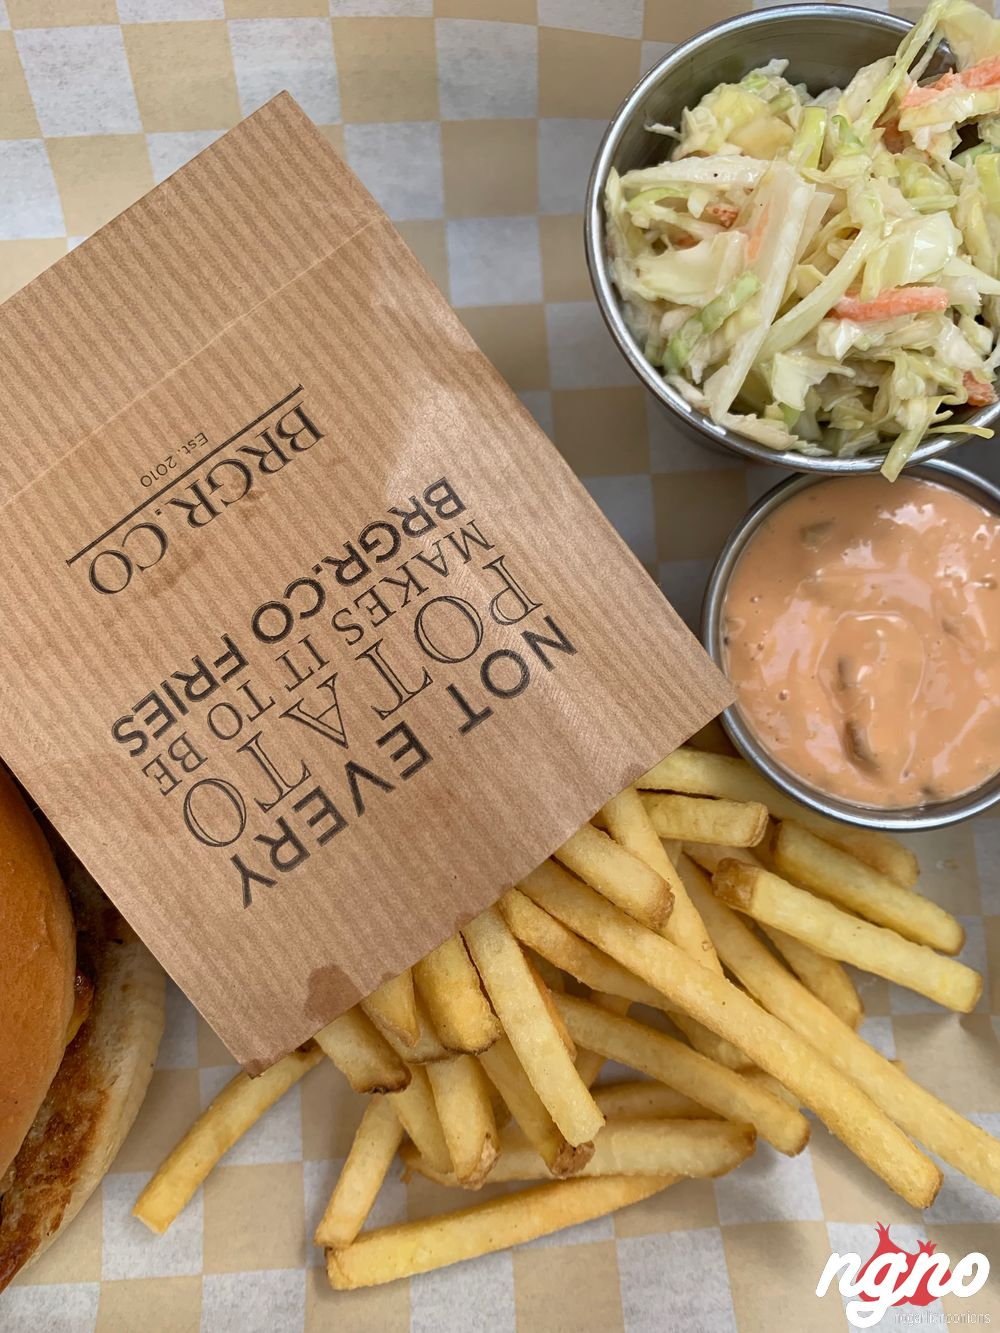 brgr-co-lunch-nogarlicnoonions-412019-02-06-10-40-14